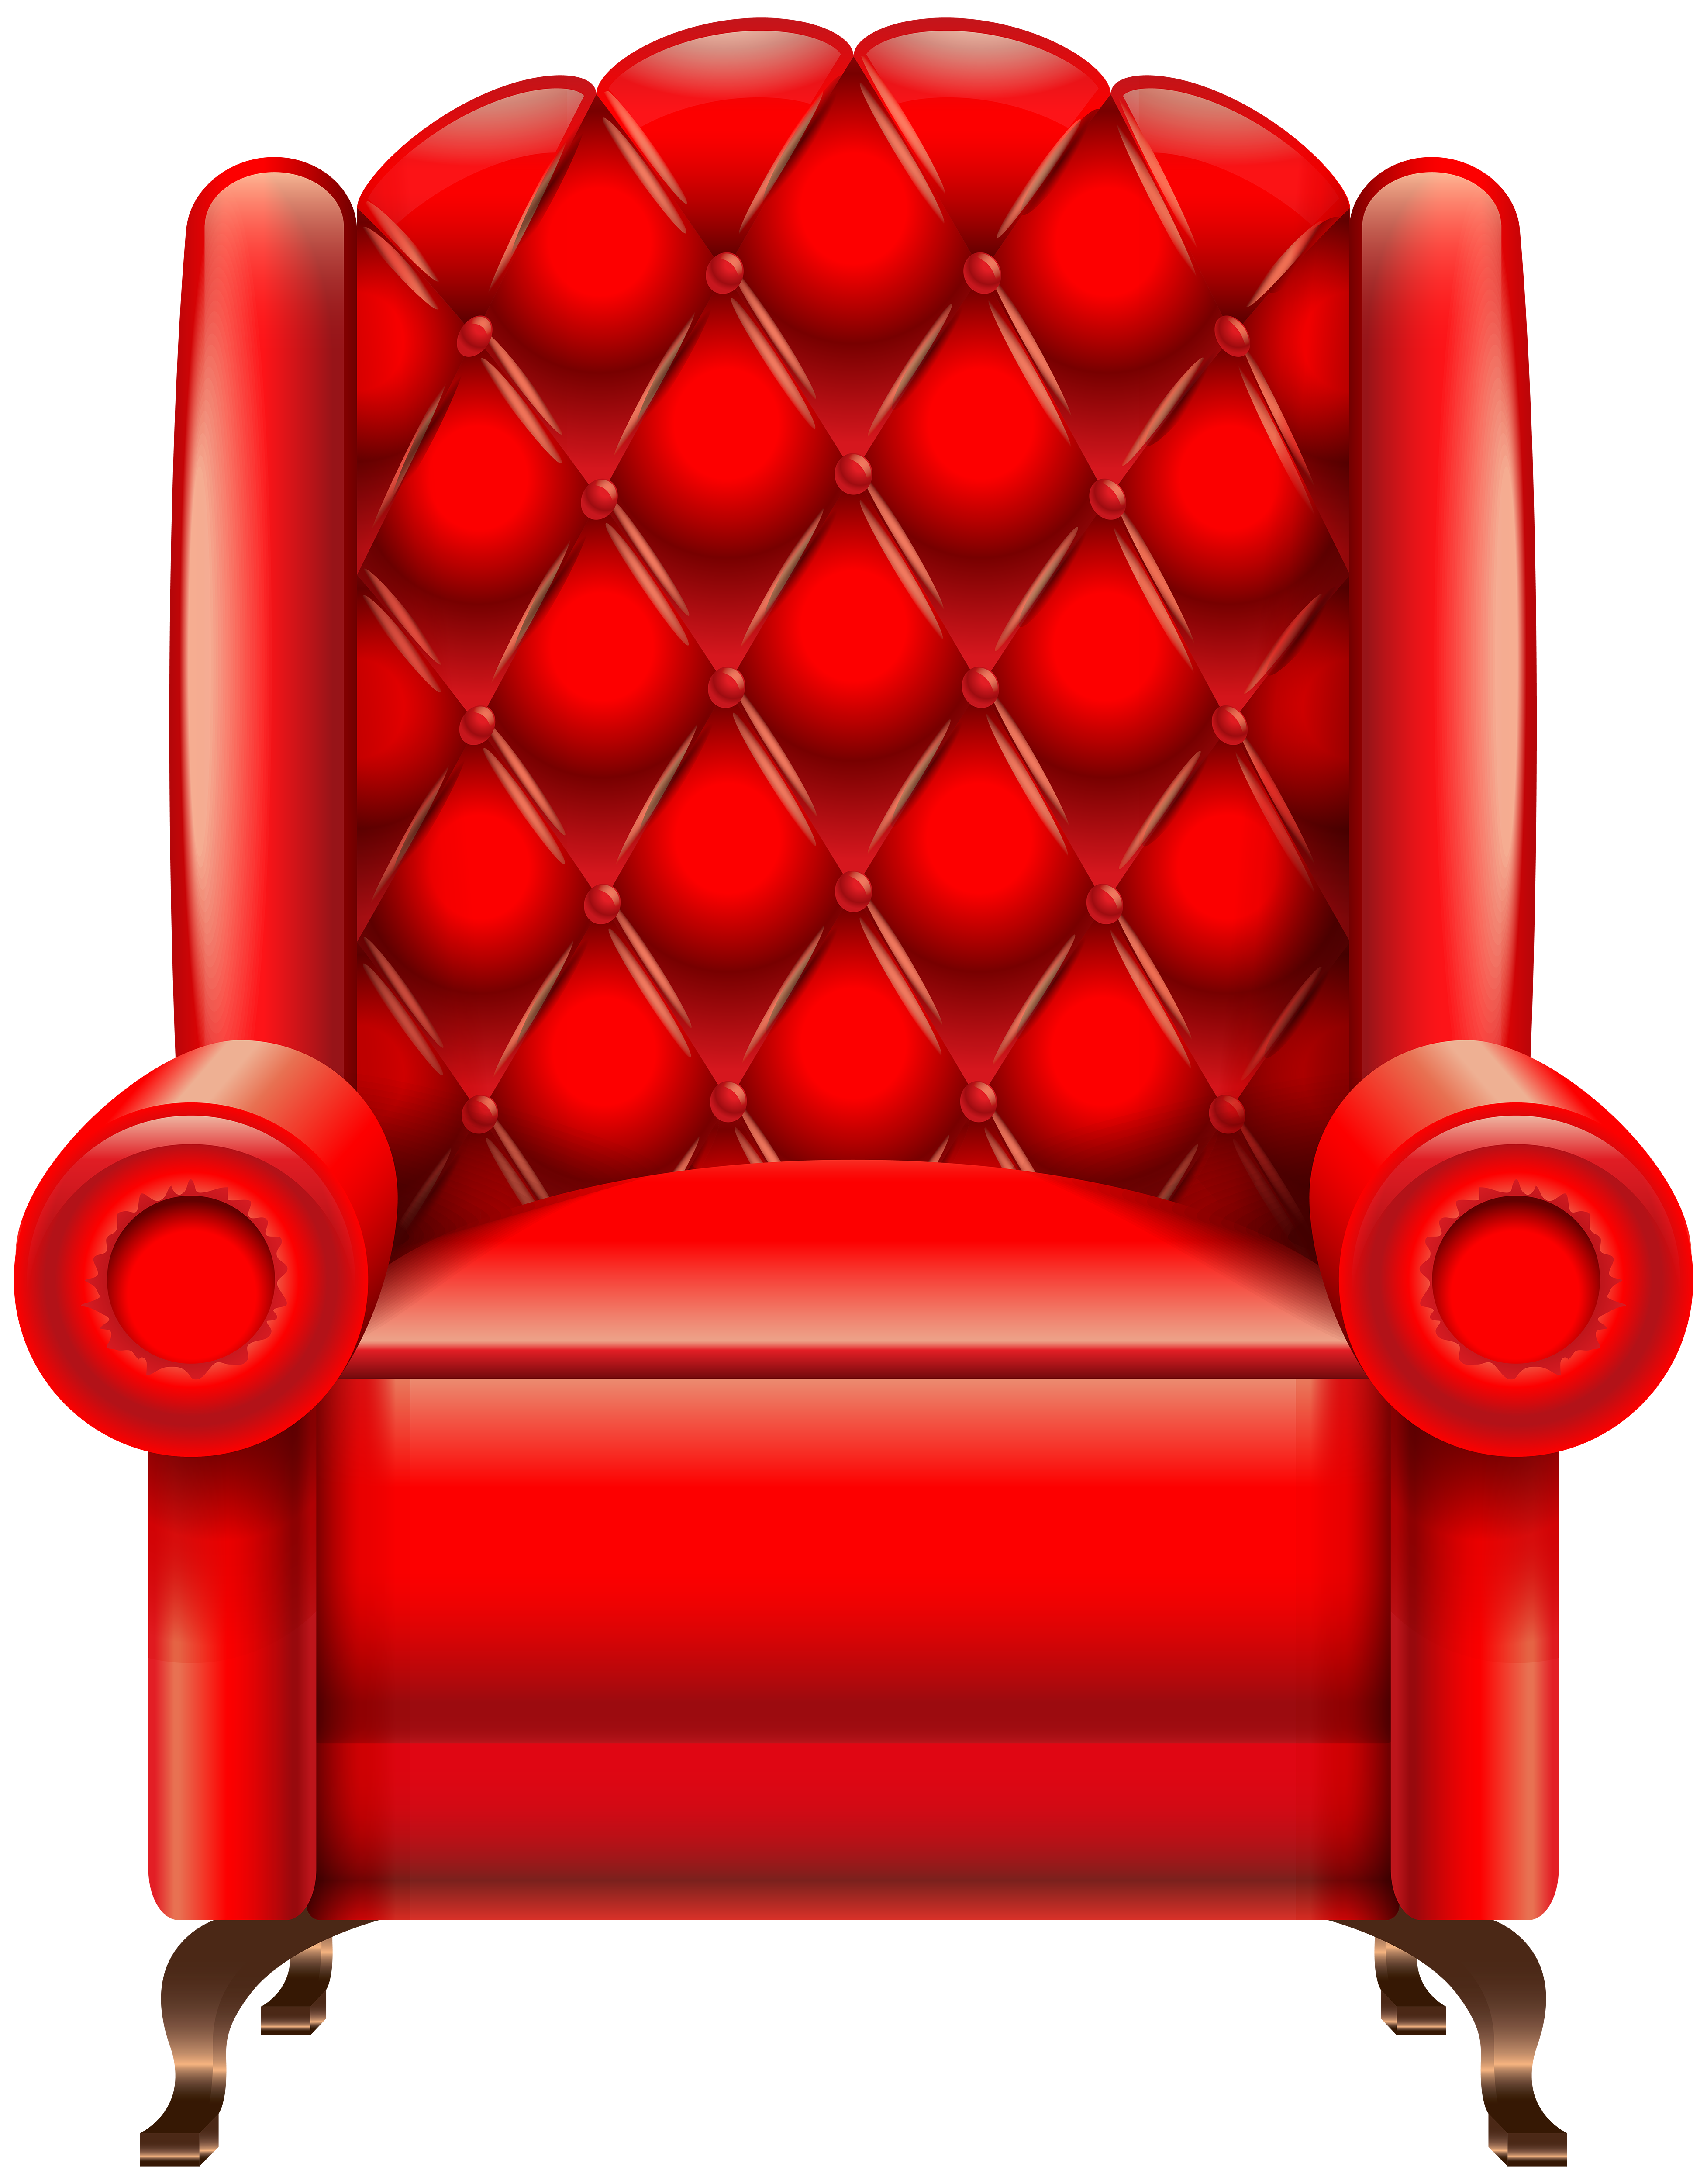 Red Armchair Transparent PNG Clip Art Image.